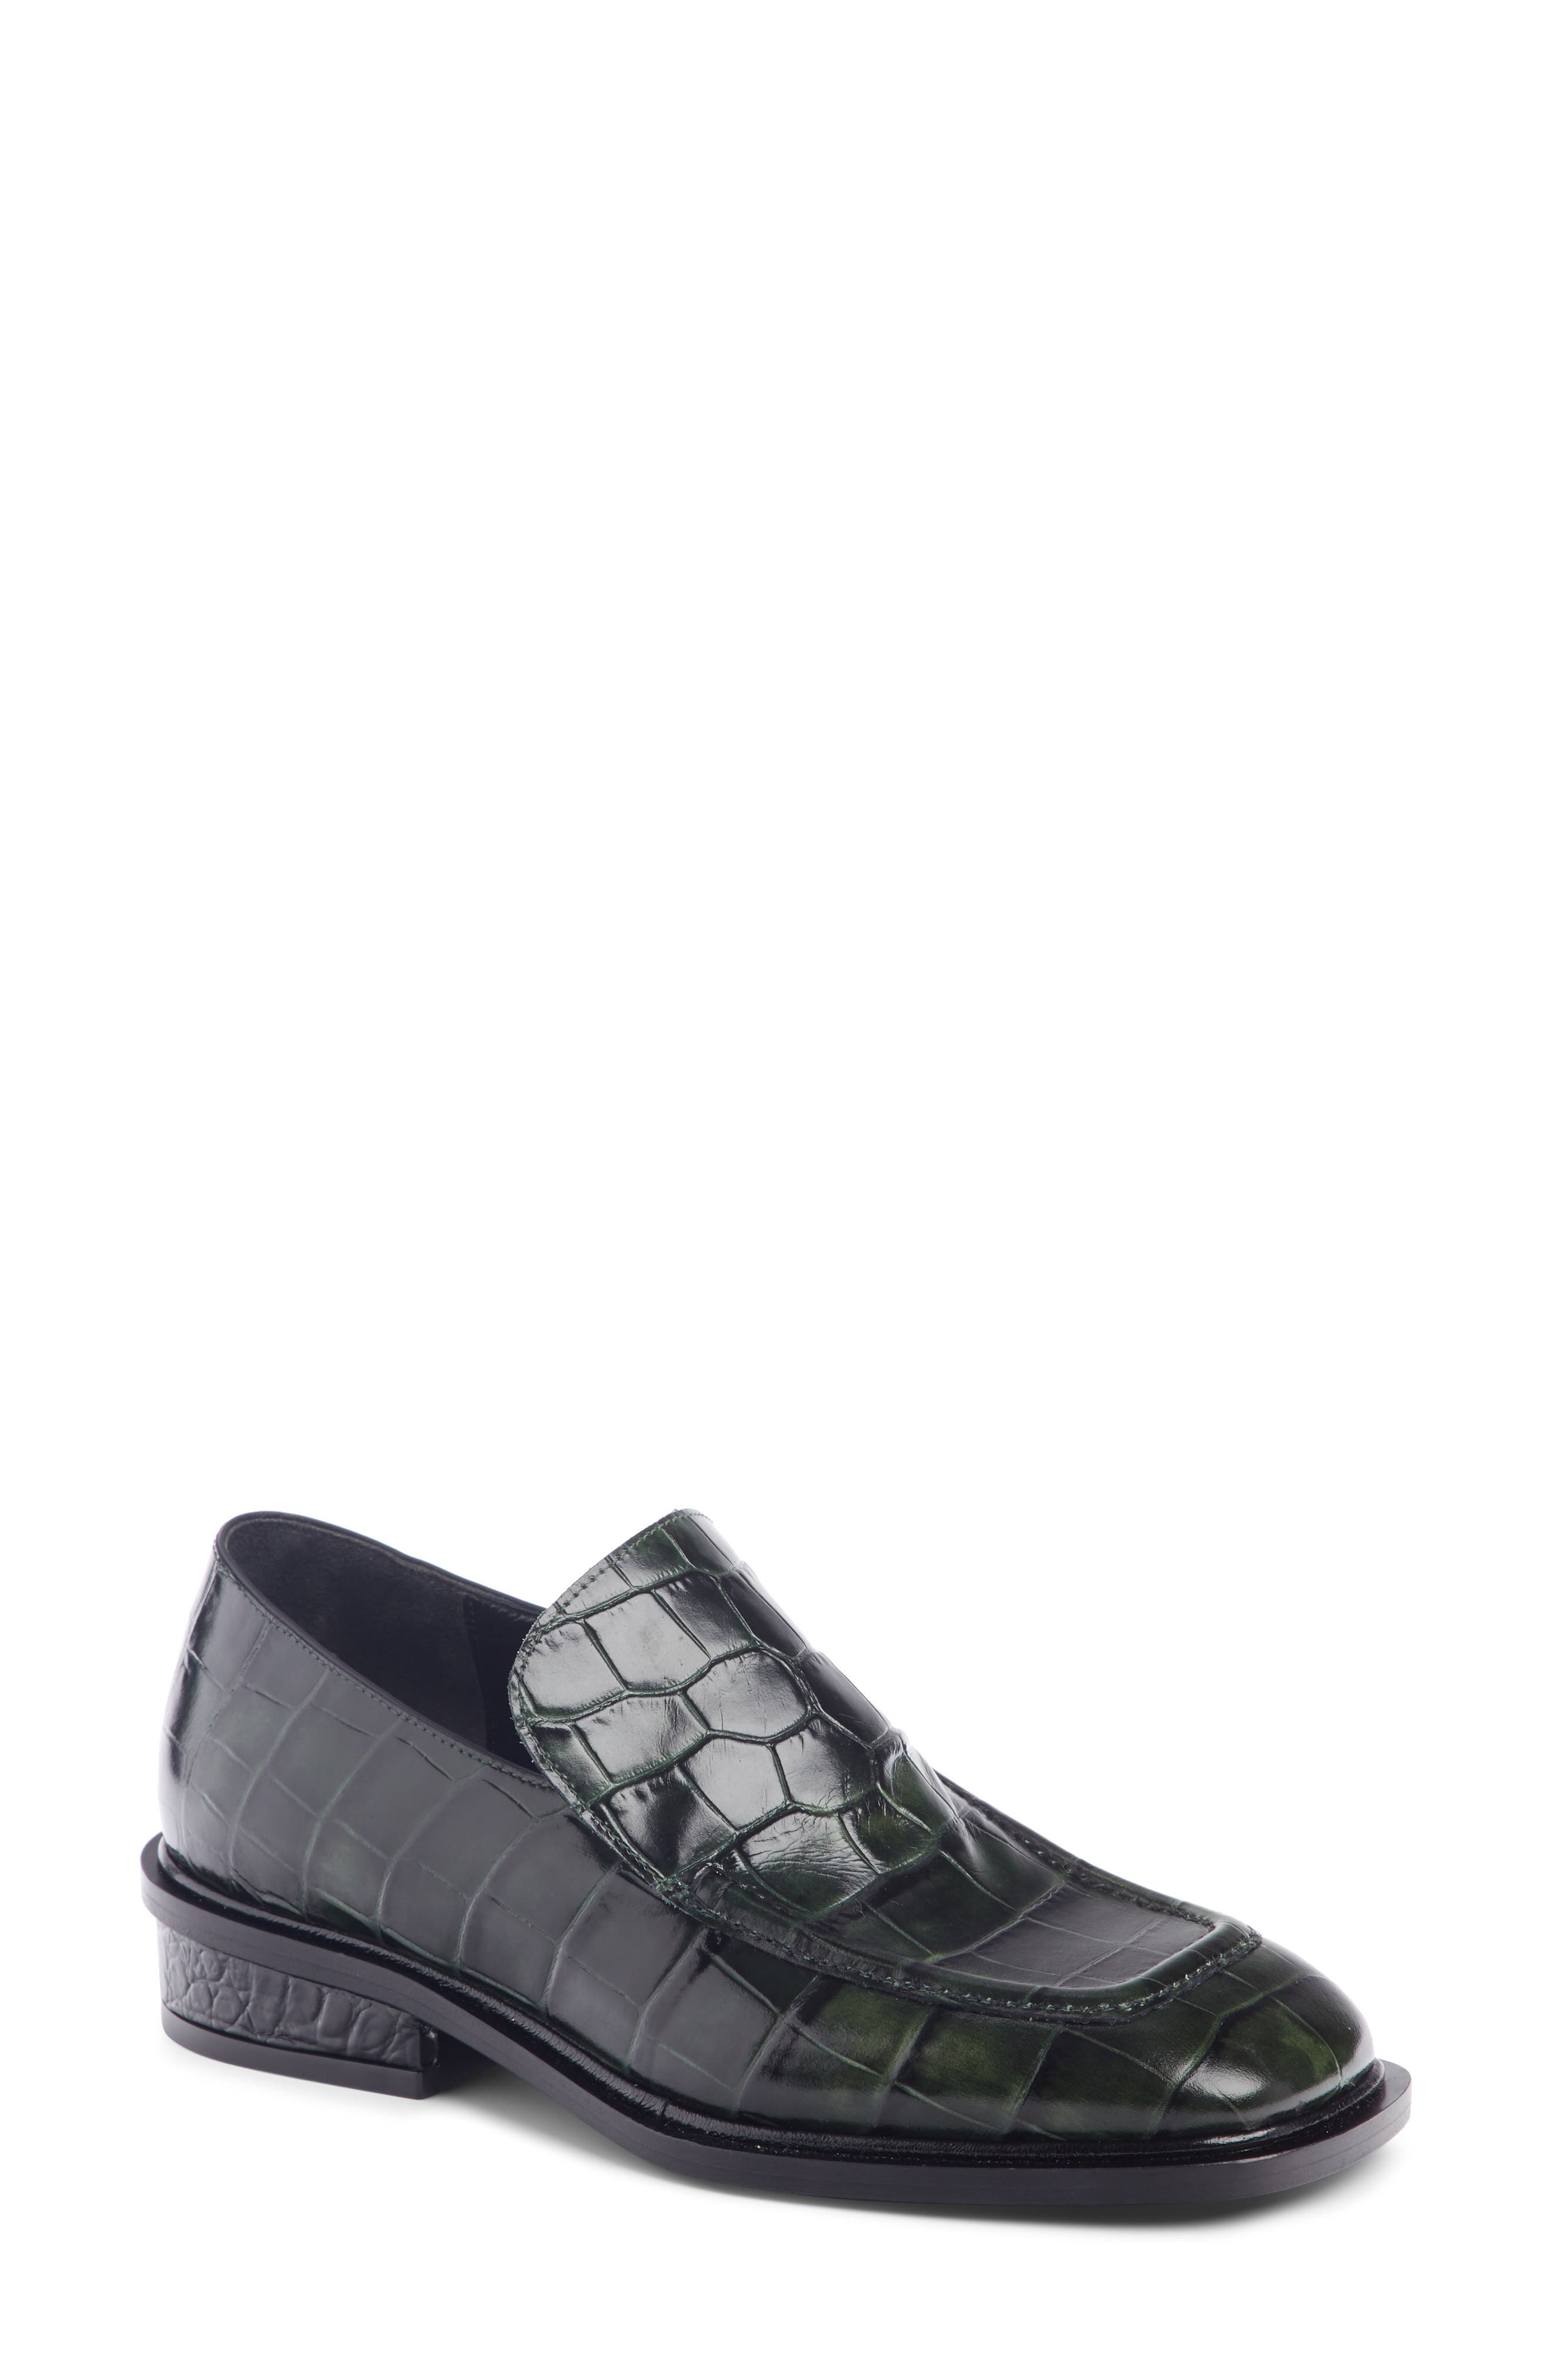 Croc Embossed Loafer,                             Main thumbnail 1, color,                             FOREST GREEN